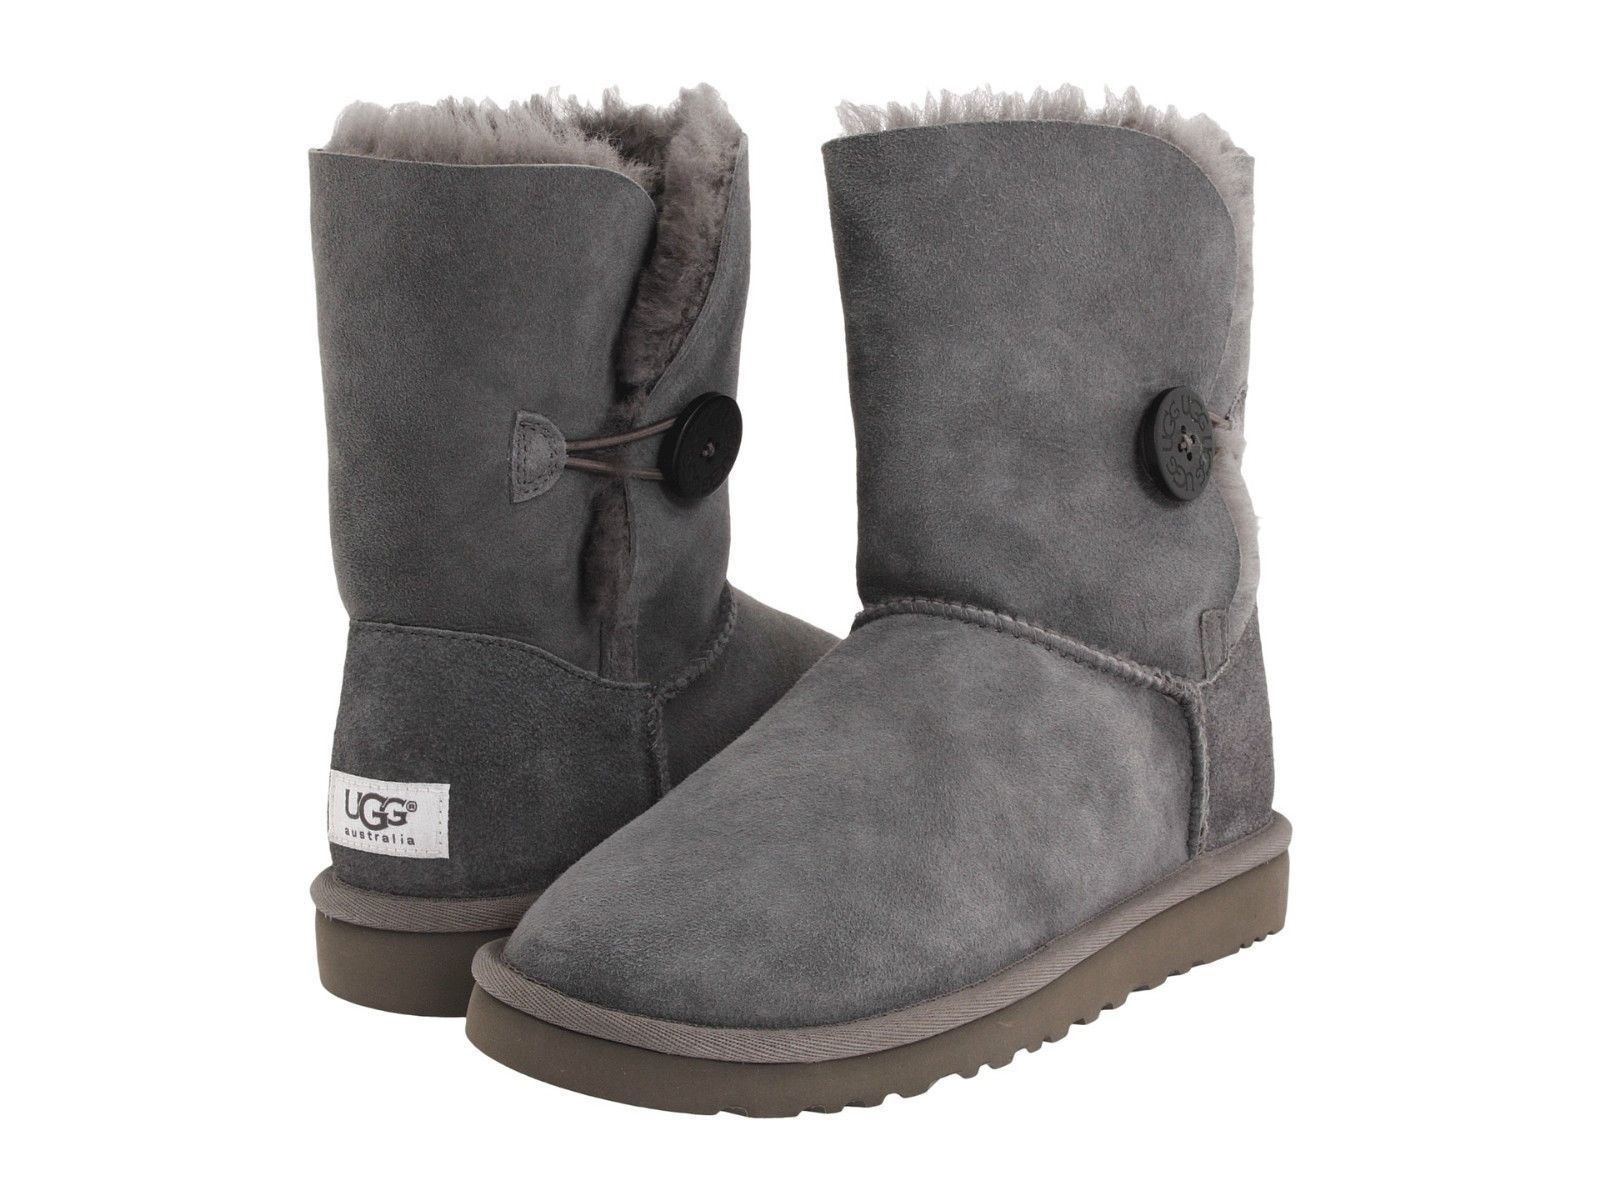 a1ef48450d9 Details about Ugg Australia Classic Bailey Button Gray Grey 5803 ...